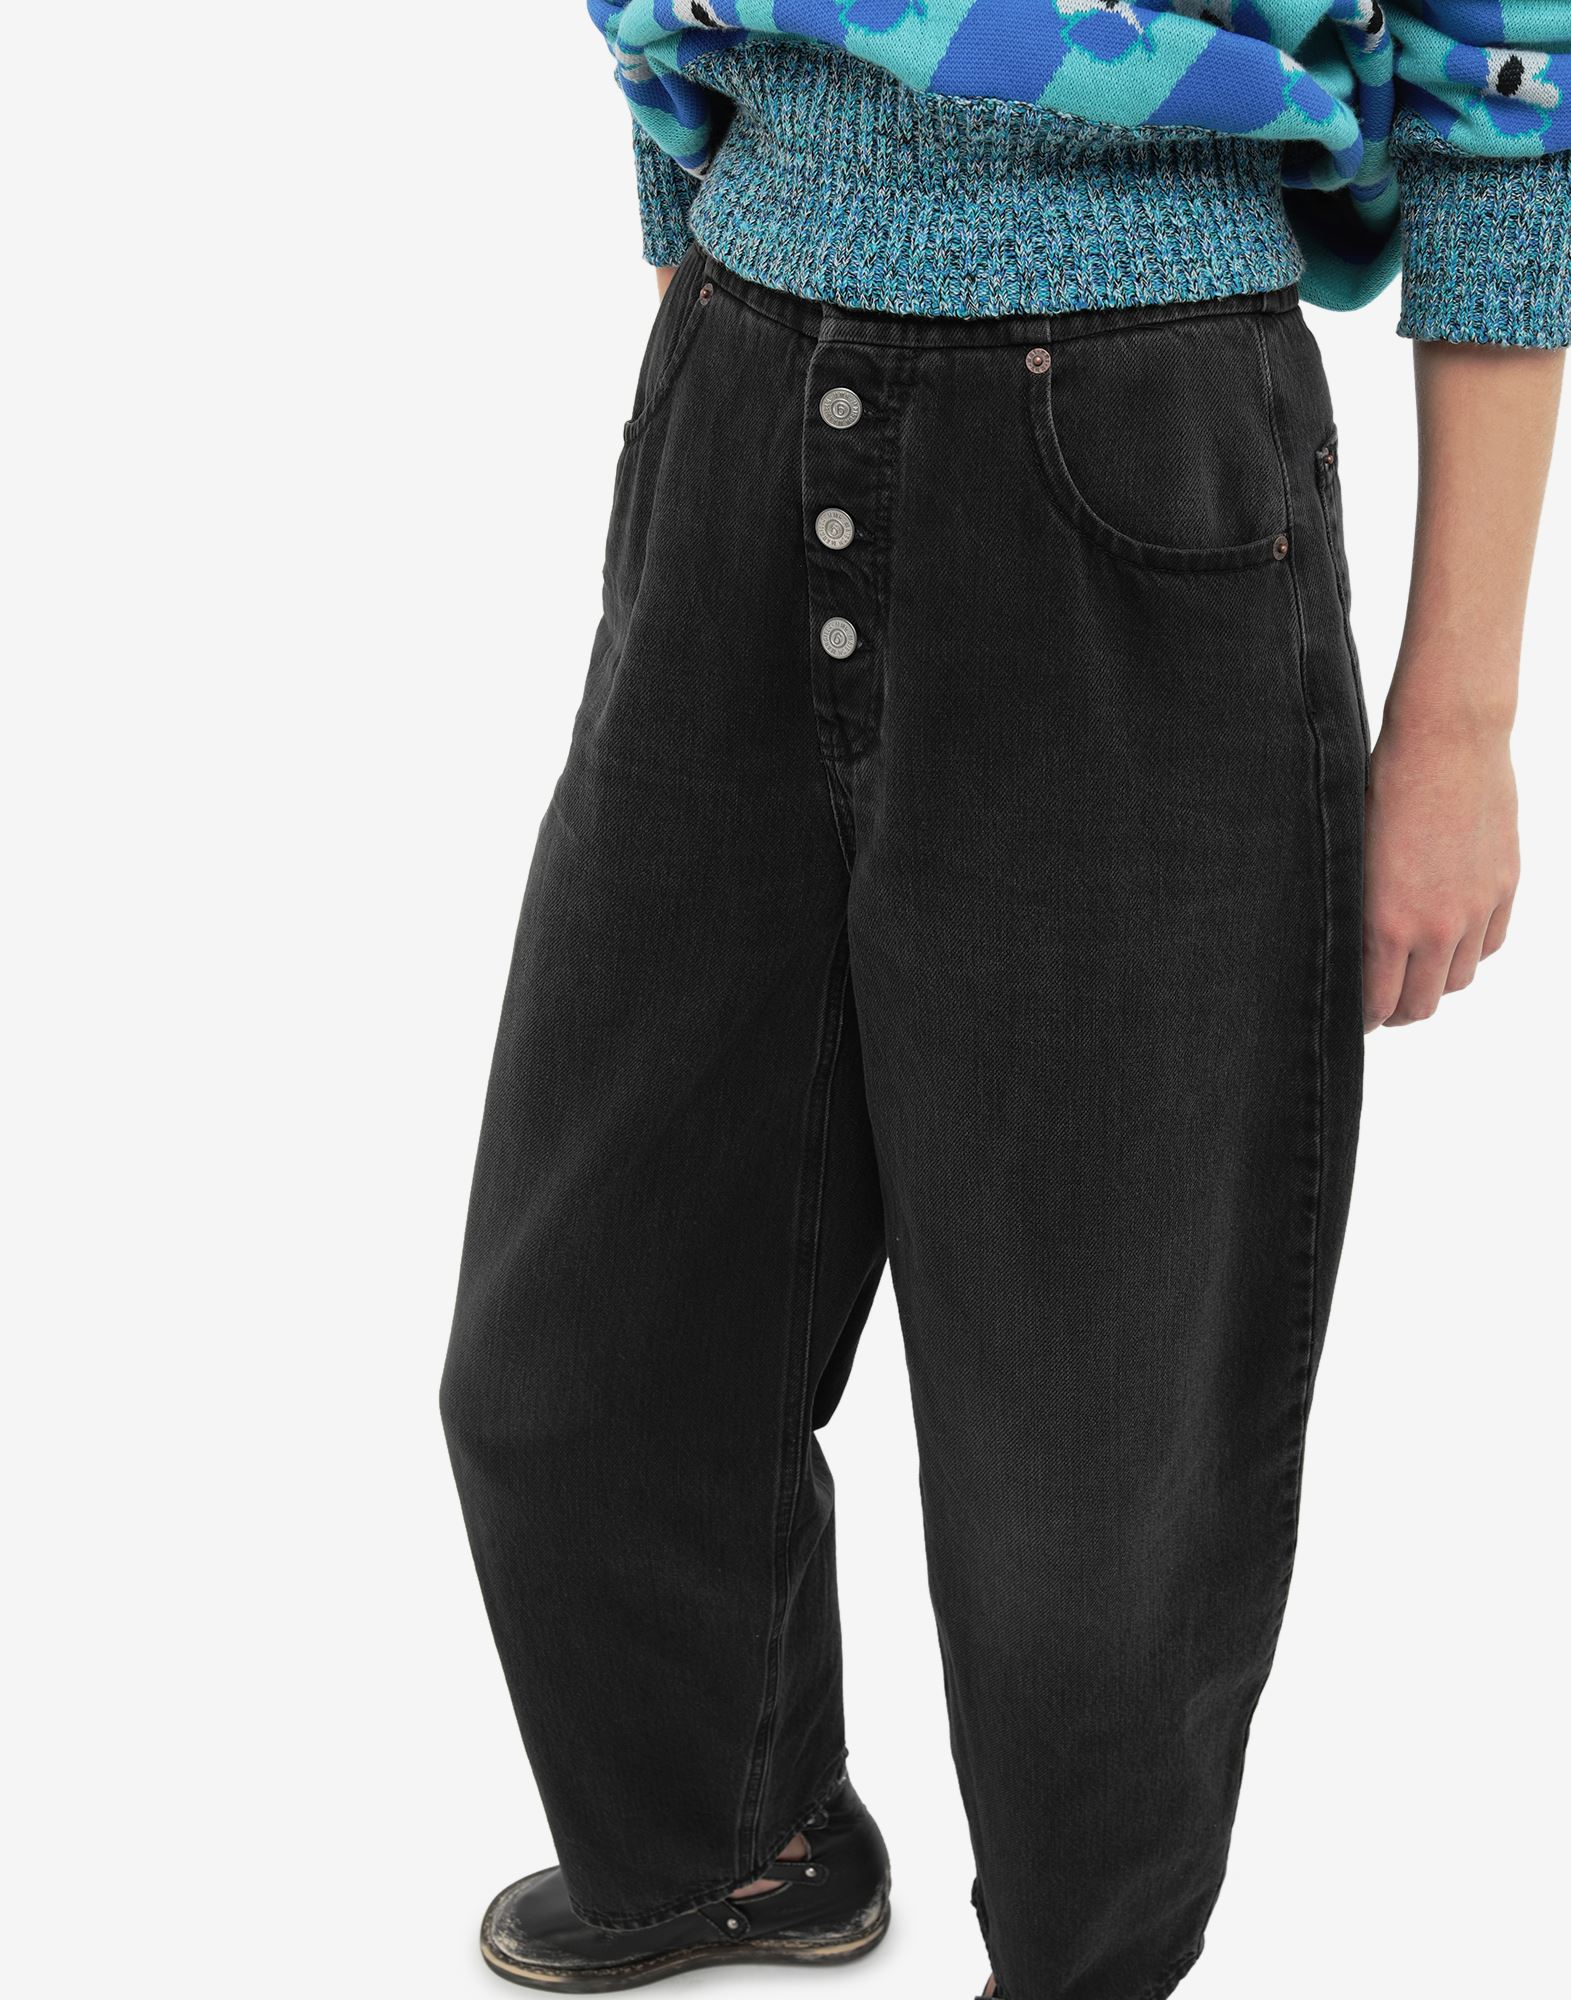 MM6 MAISON MARGIELA High-rise denim pants Jeans Woman a